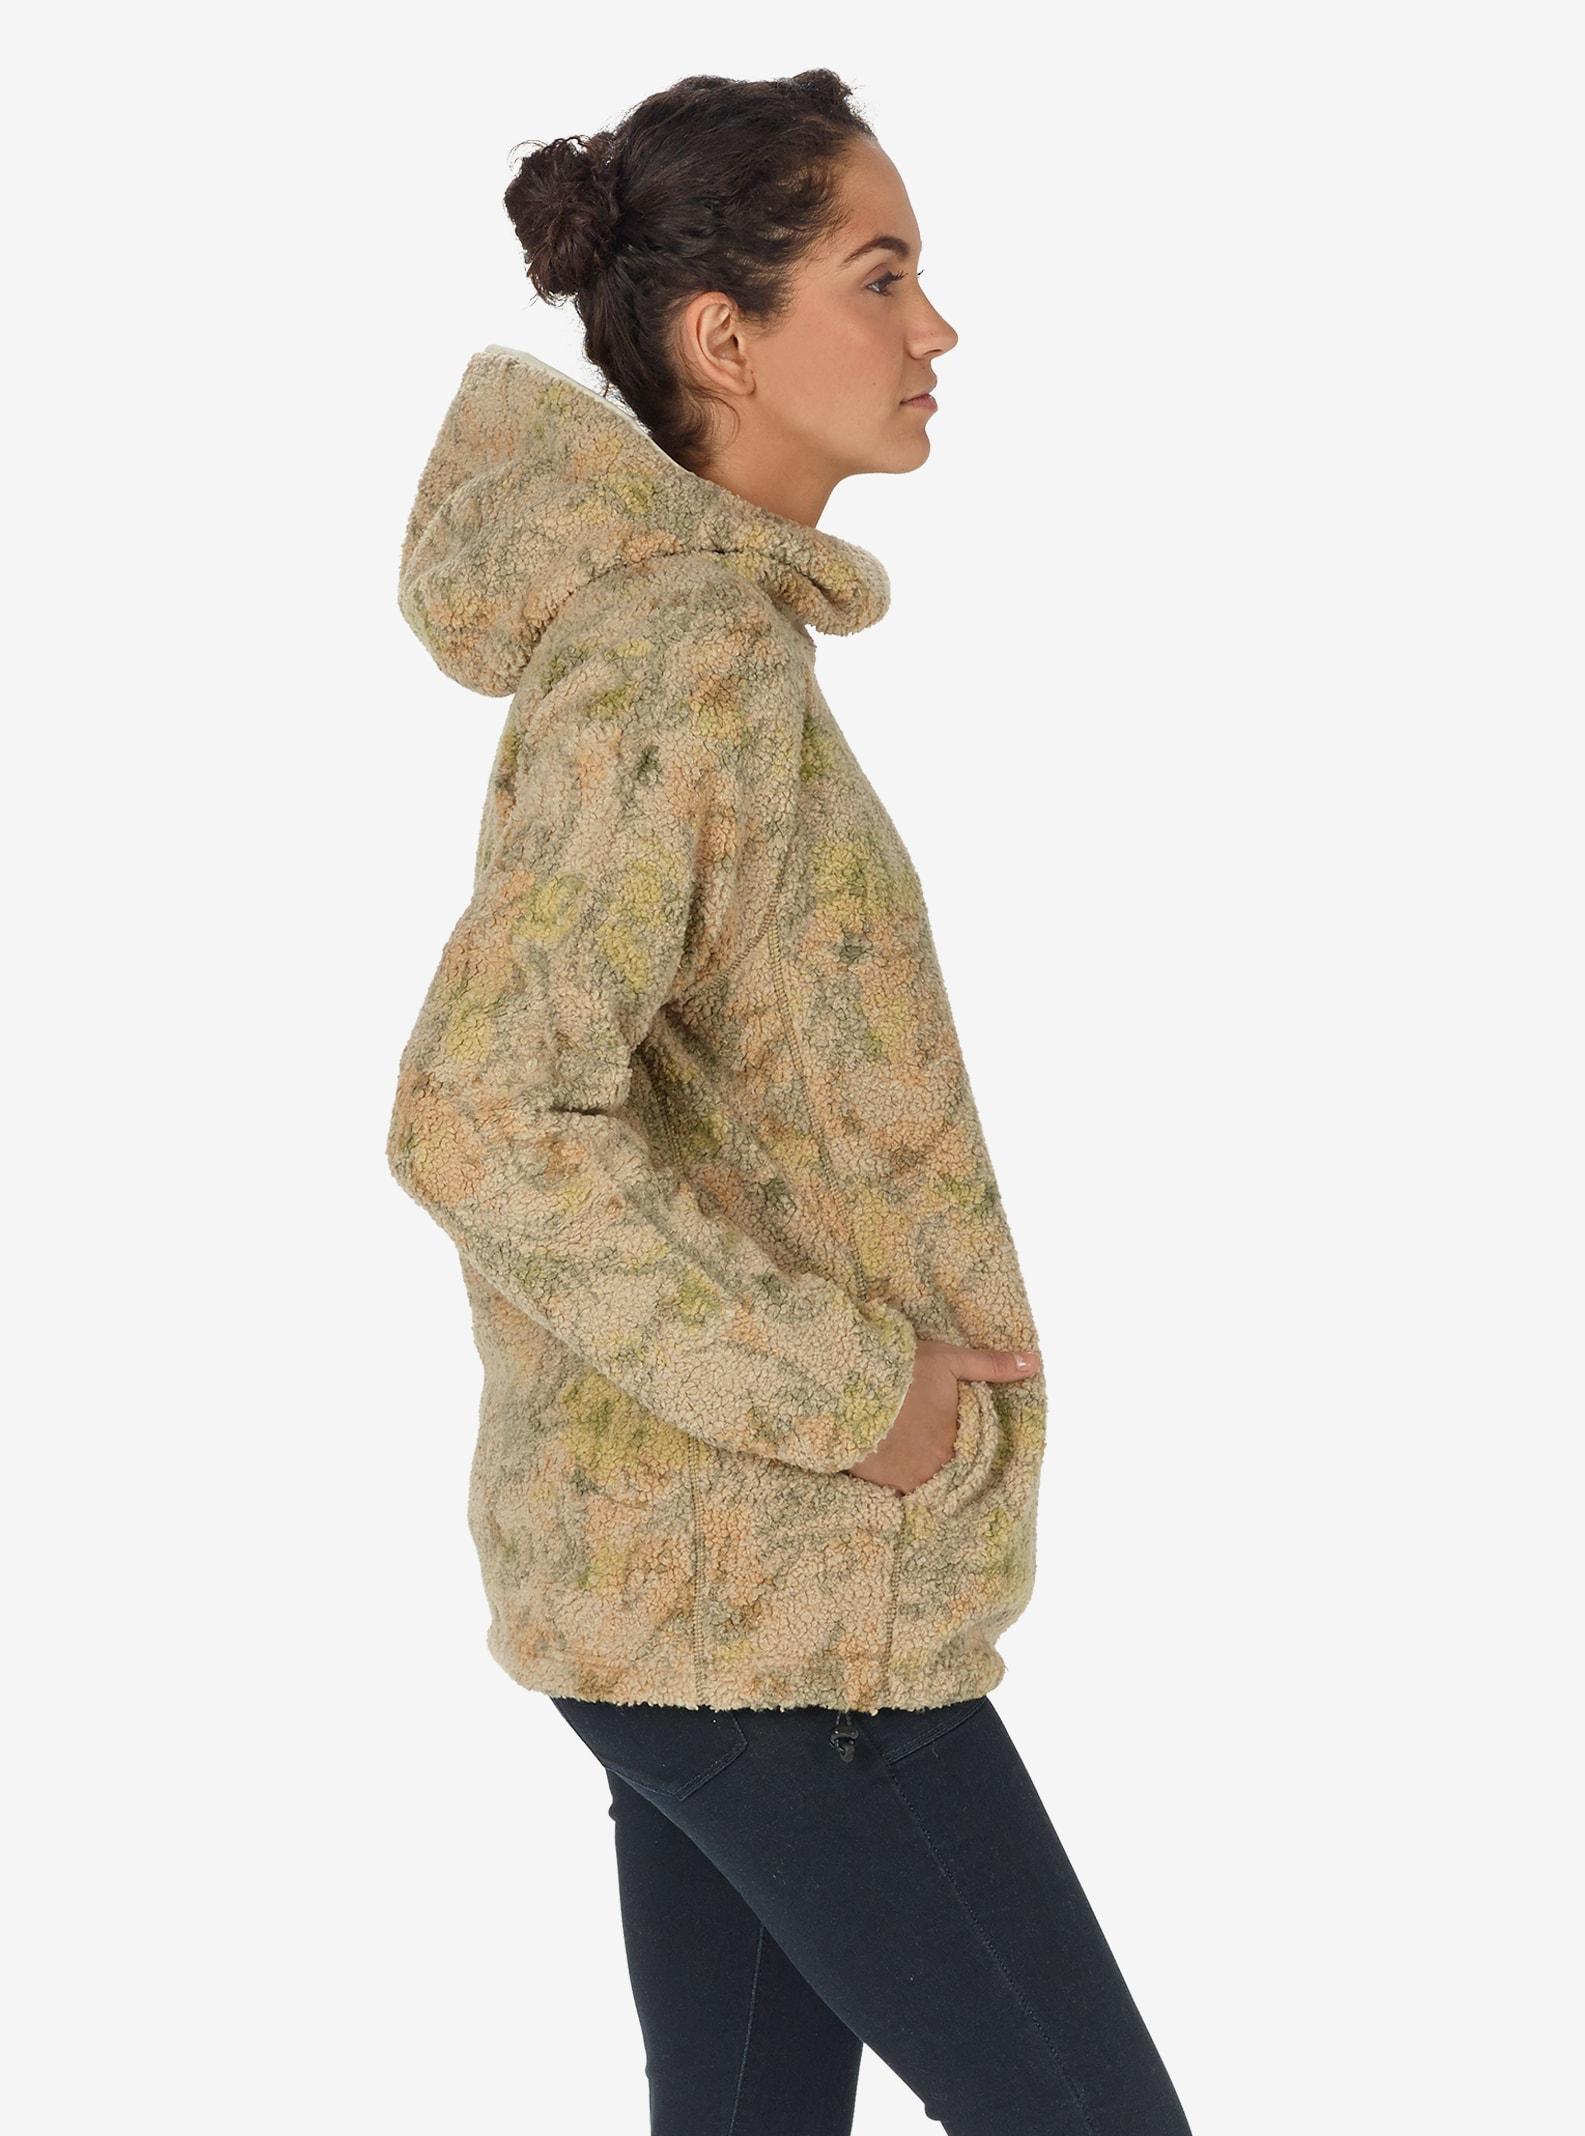 Women's Burton Lynx Pullover Fleece shown in Tapestry Camo